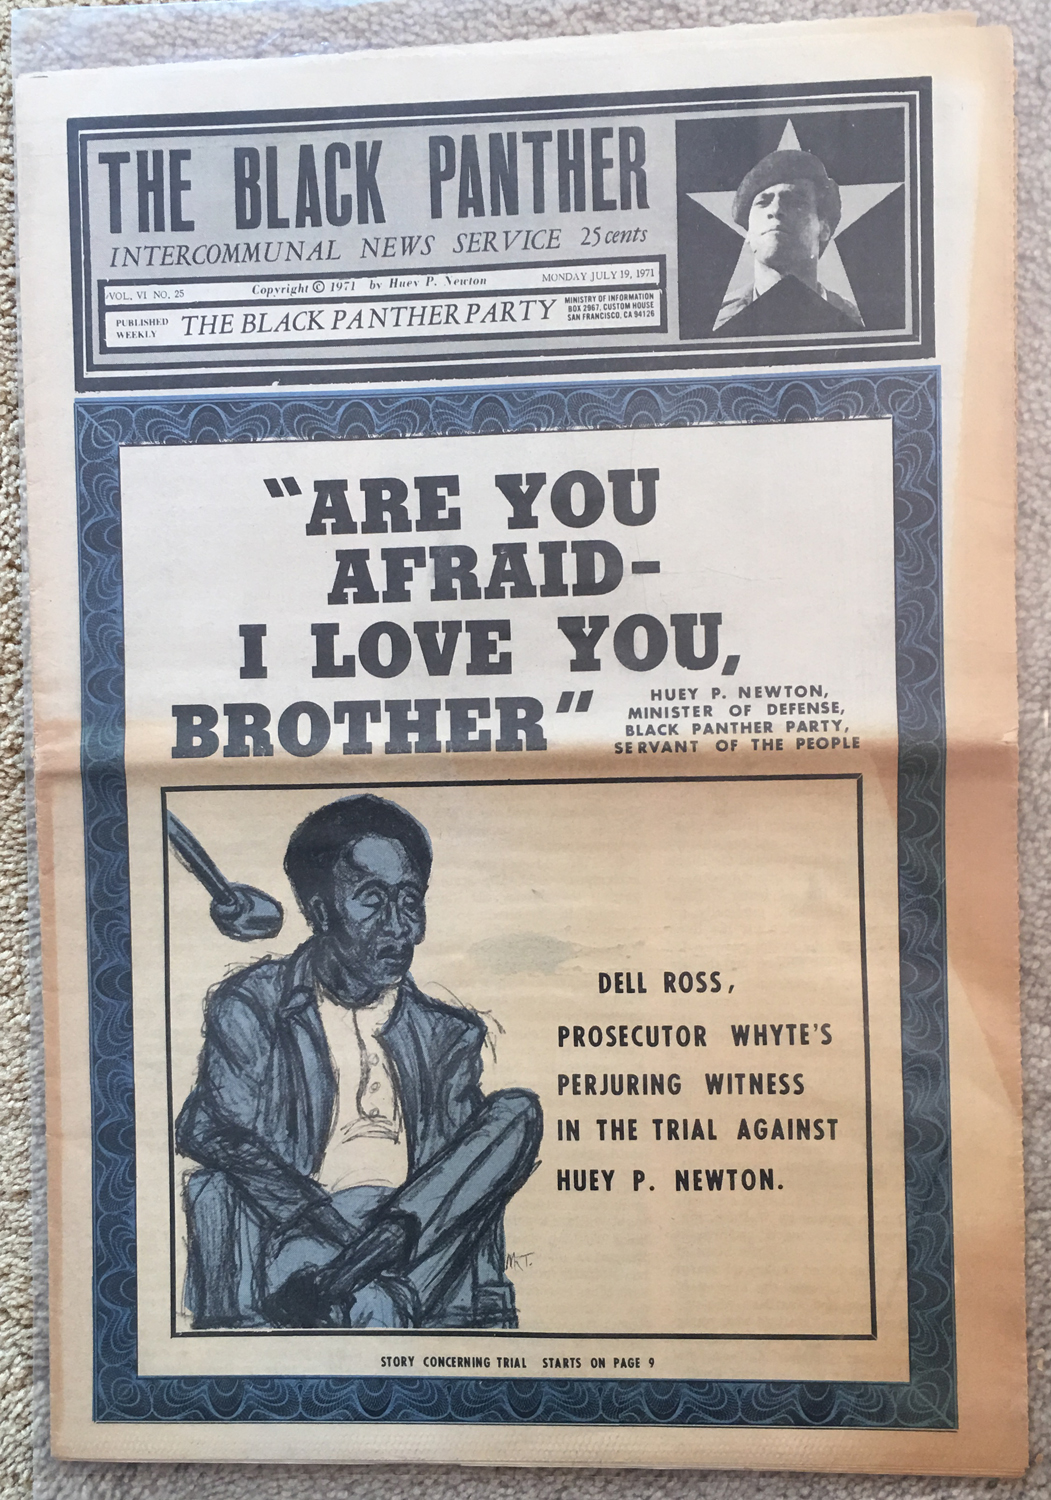 Image for The Black Panther, July 19, 1971 : InterCommunal News Service